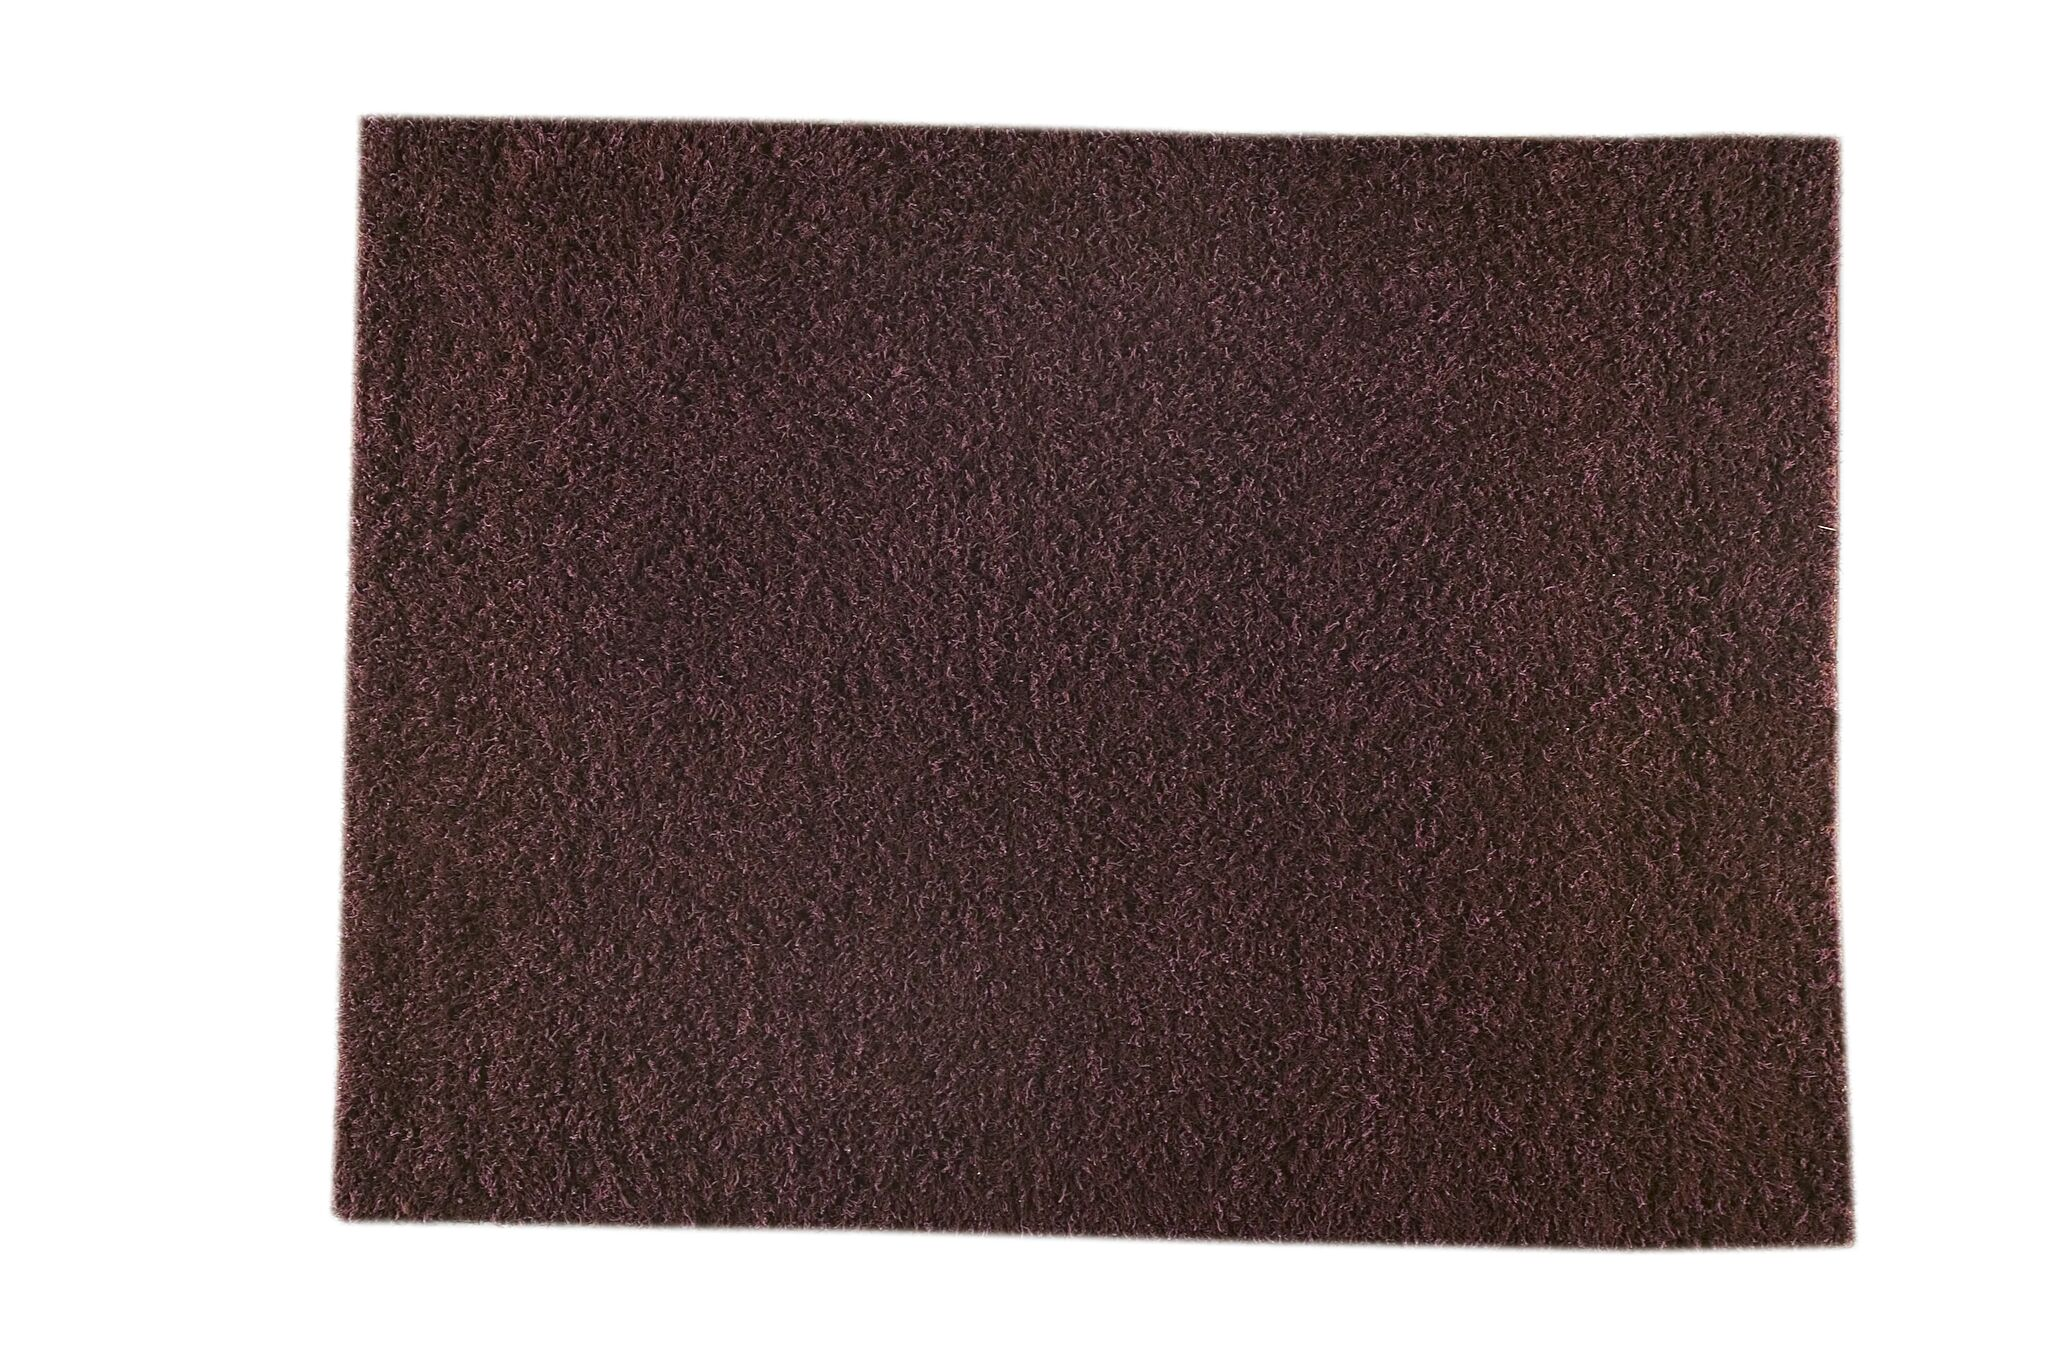 Goliath Mix Brown Contemporary Rug Rug Size: Rectangle 4'6